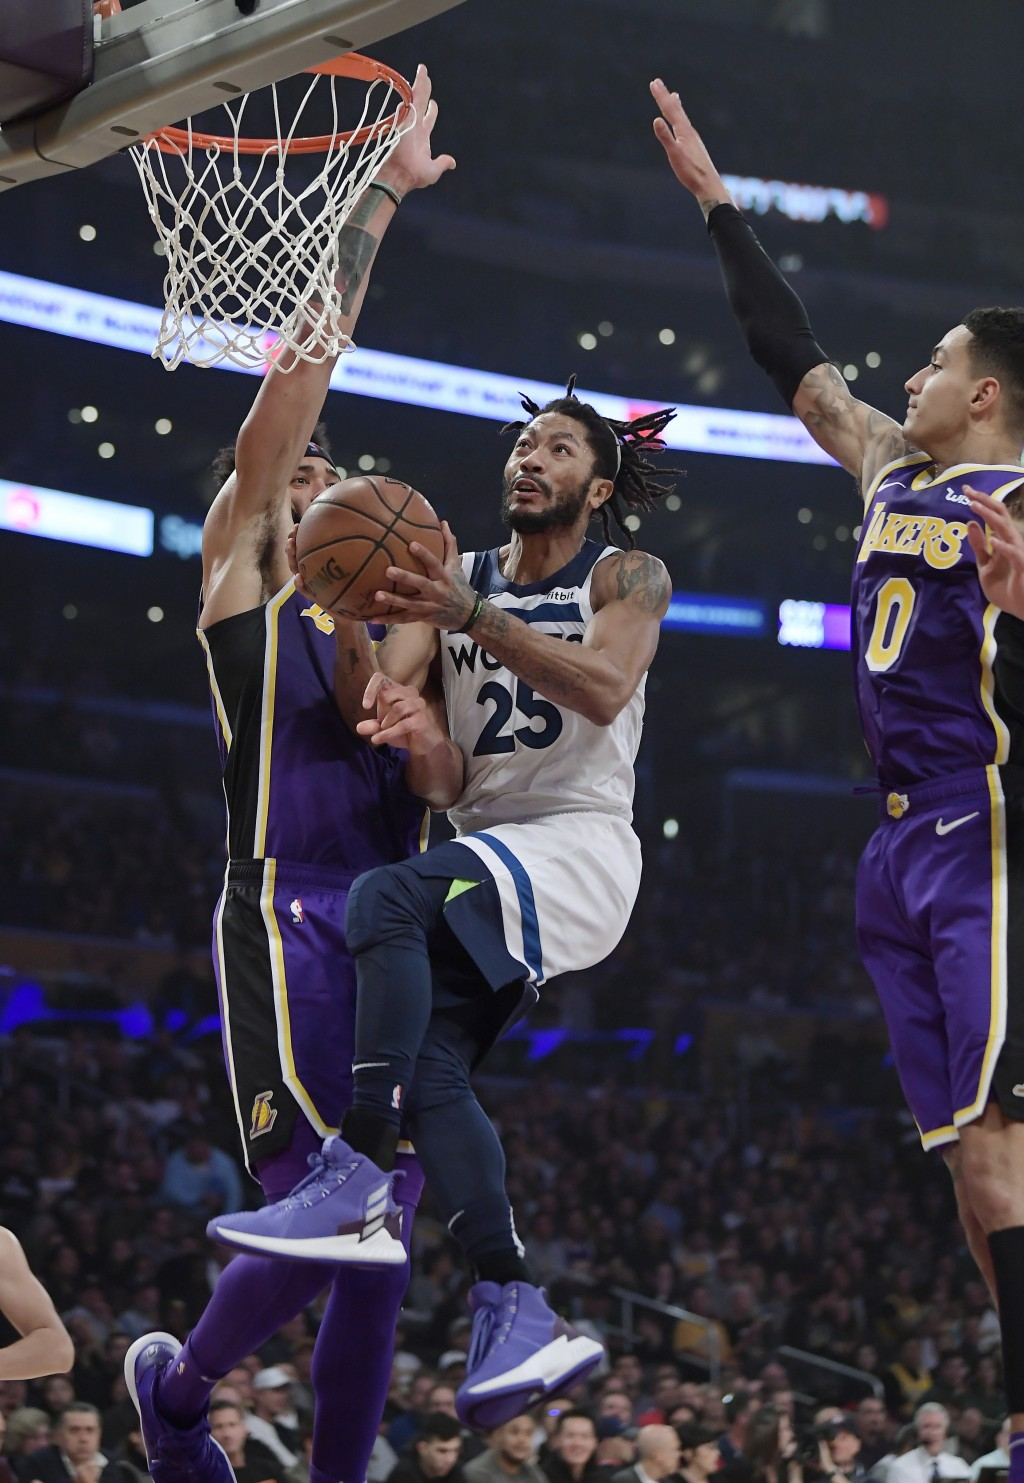 Minnesota Timberwolves guard Derrick Rose, center, goes to the basket as Los Angeles Lakers center JaVale McGee, left, and forward Kyle Kuzma defend d